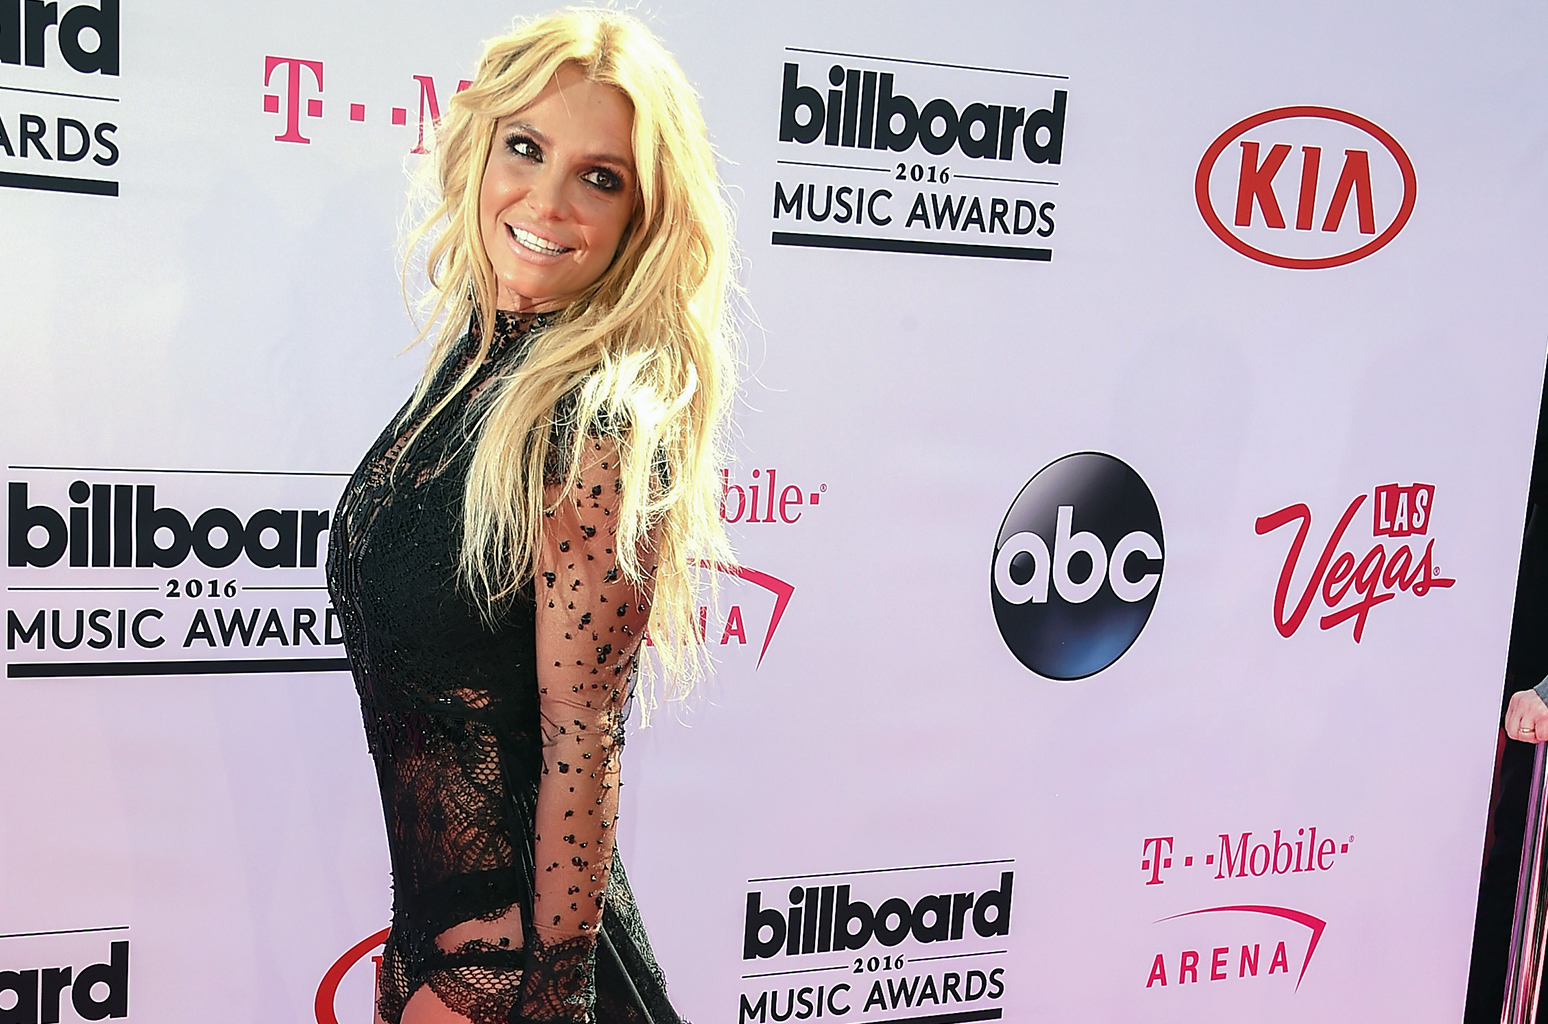 LAS VEGAS, NV - MAY 22:  Honoree Britney Spears attends the 2016 Billboard Music Awards at T-Mobile Arena on May 22, 2016 in Las Vegas, Nevada.  (Photo by Steve Granitz/WireImage)